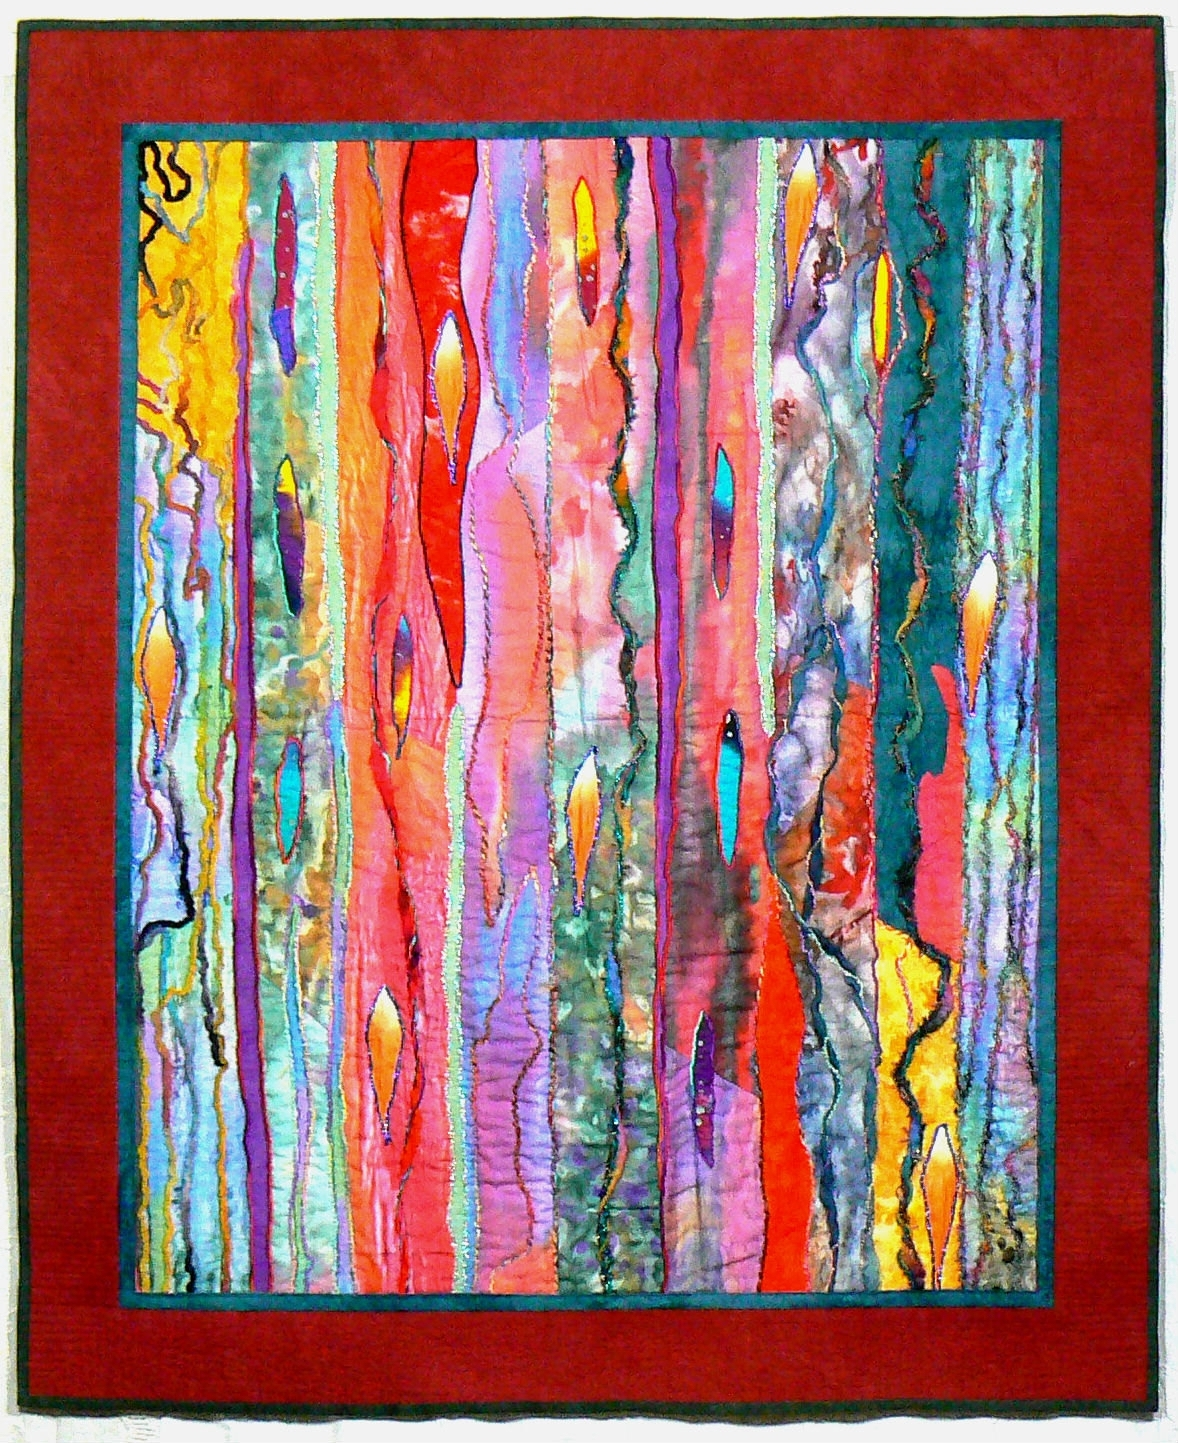 Fiber Art Quilt, Art Wall Hanging, Contemporary Quilt, Modern Art Inside Most Popular Contemporary Textile Wall Art (View 4 of 15)